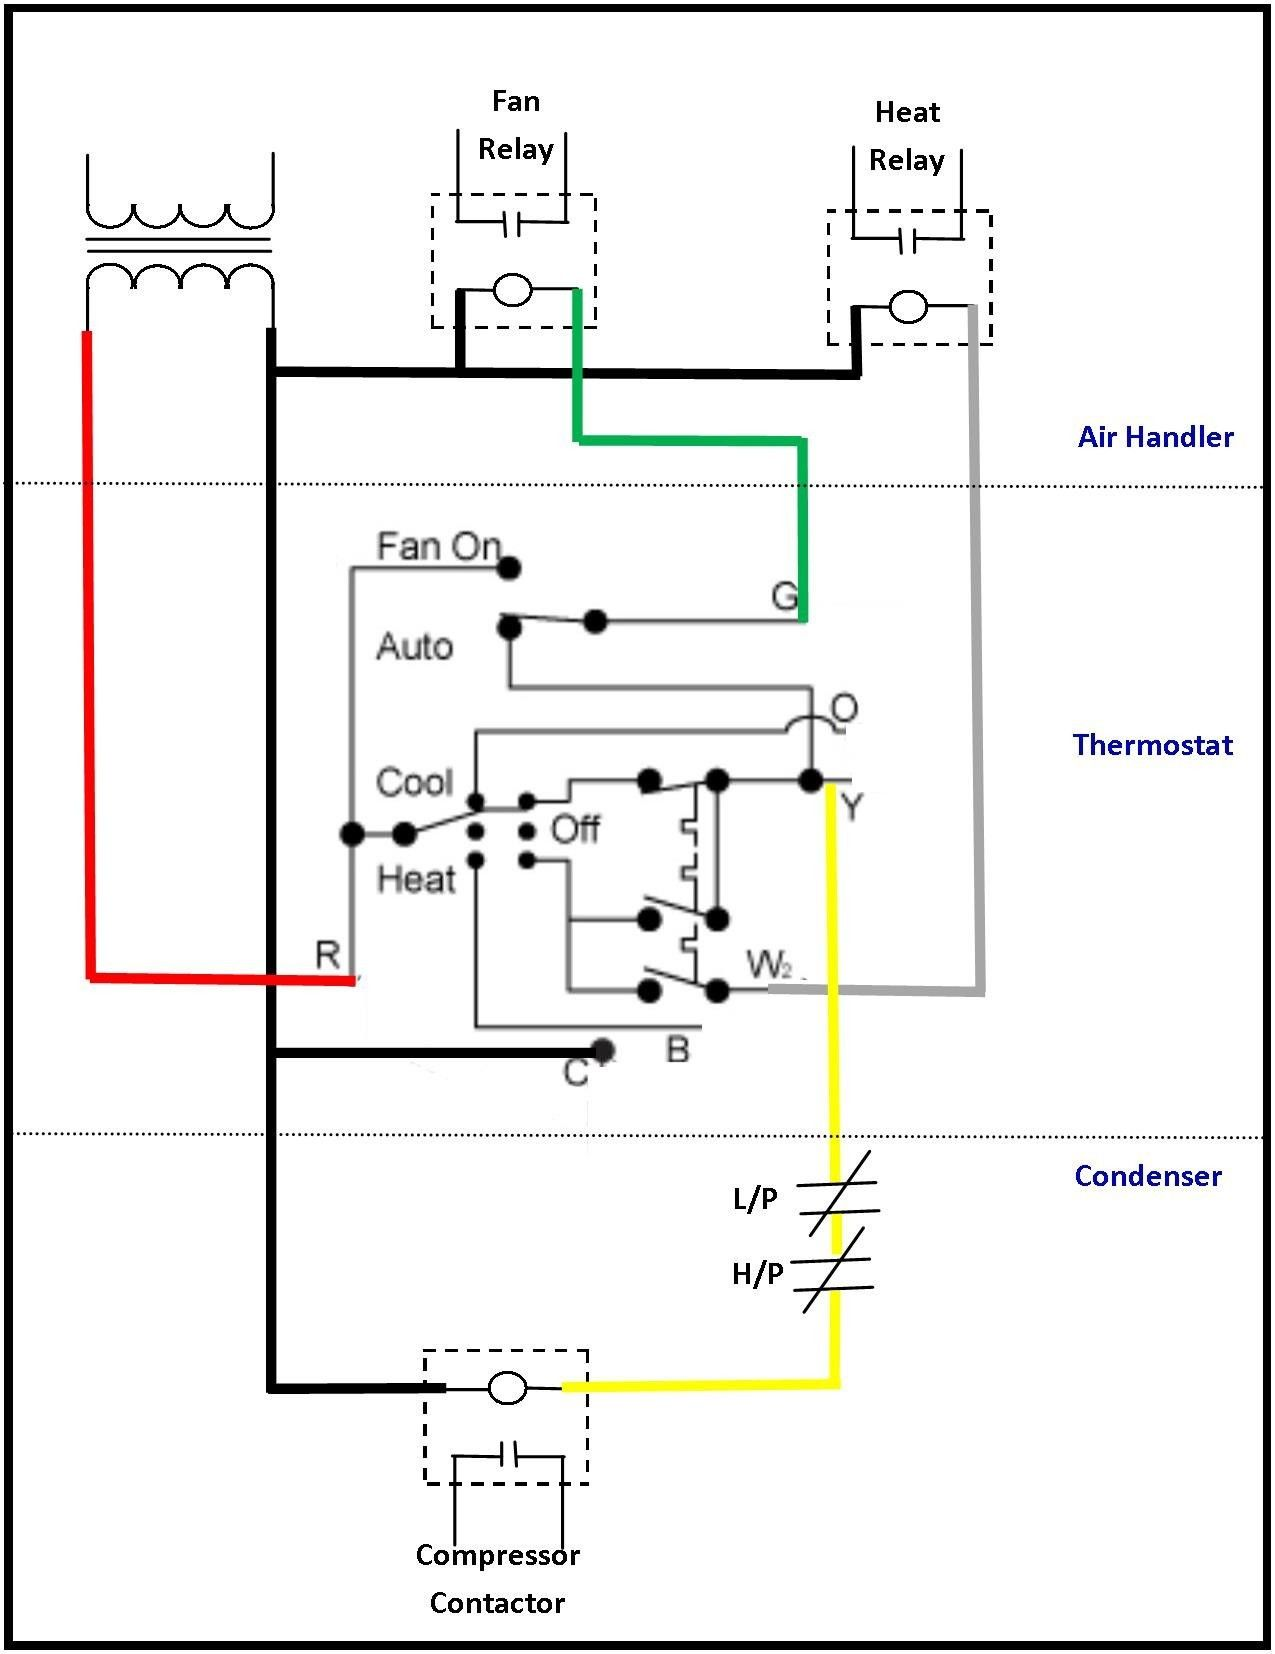 Wiring Diagram Car Air Conditioning #diagram #diagramtemplate  #diagramsample | Thermostat wiring, Electrical circuit diagram, Electrical wiring  diagram | Home A C Condenser Relay Wiring |  | Pinterest